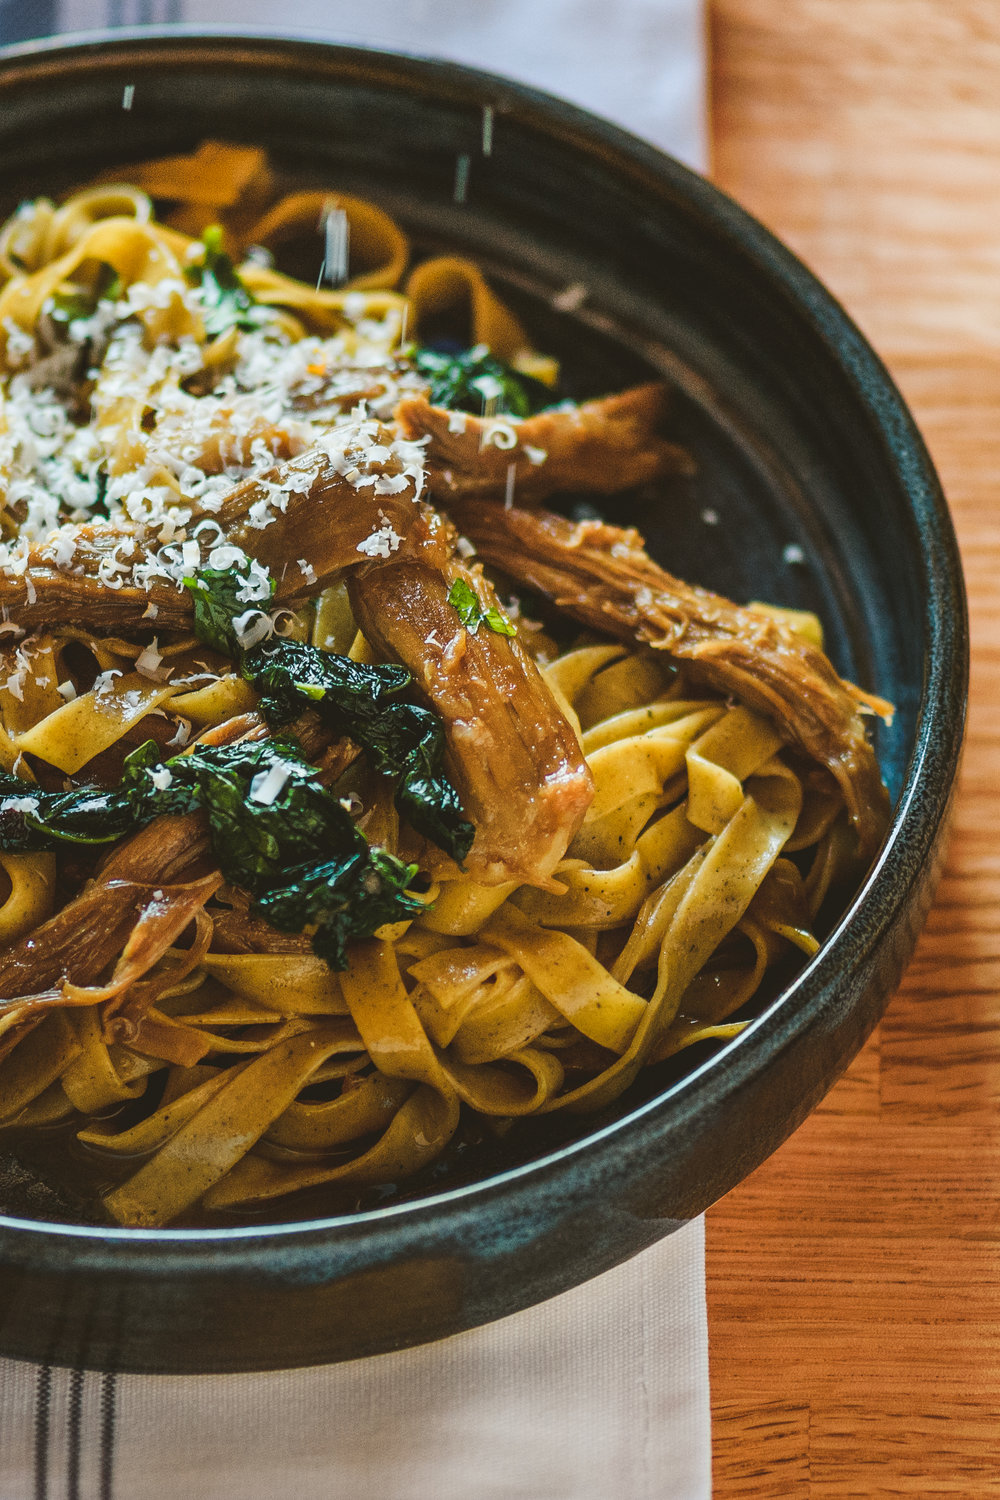 Tagliatelli Grano Arso with lamb shoulder, kale, and smoked ricotta salata.JPG